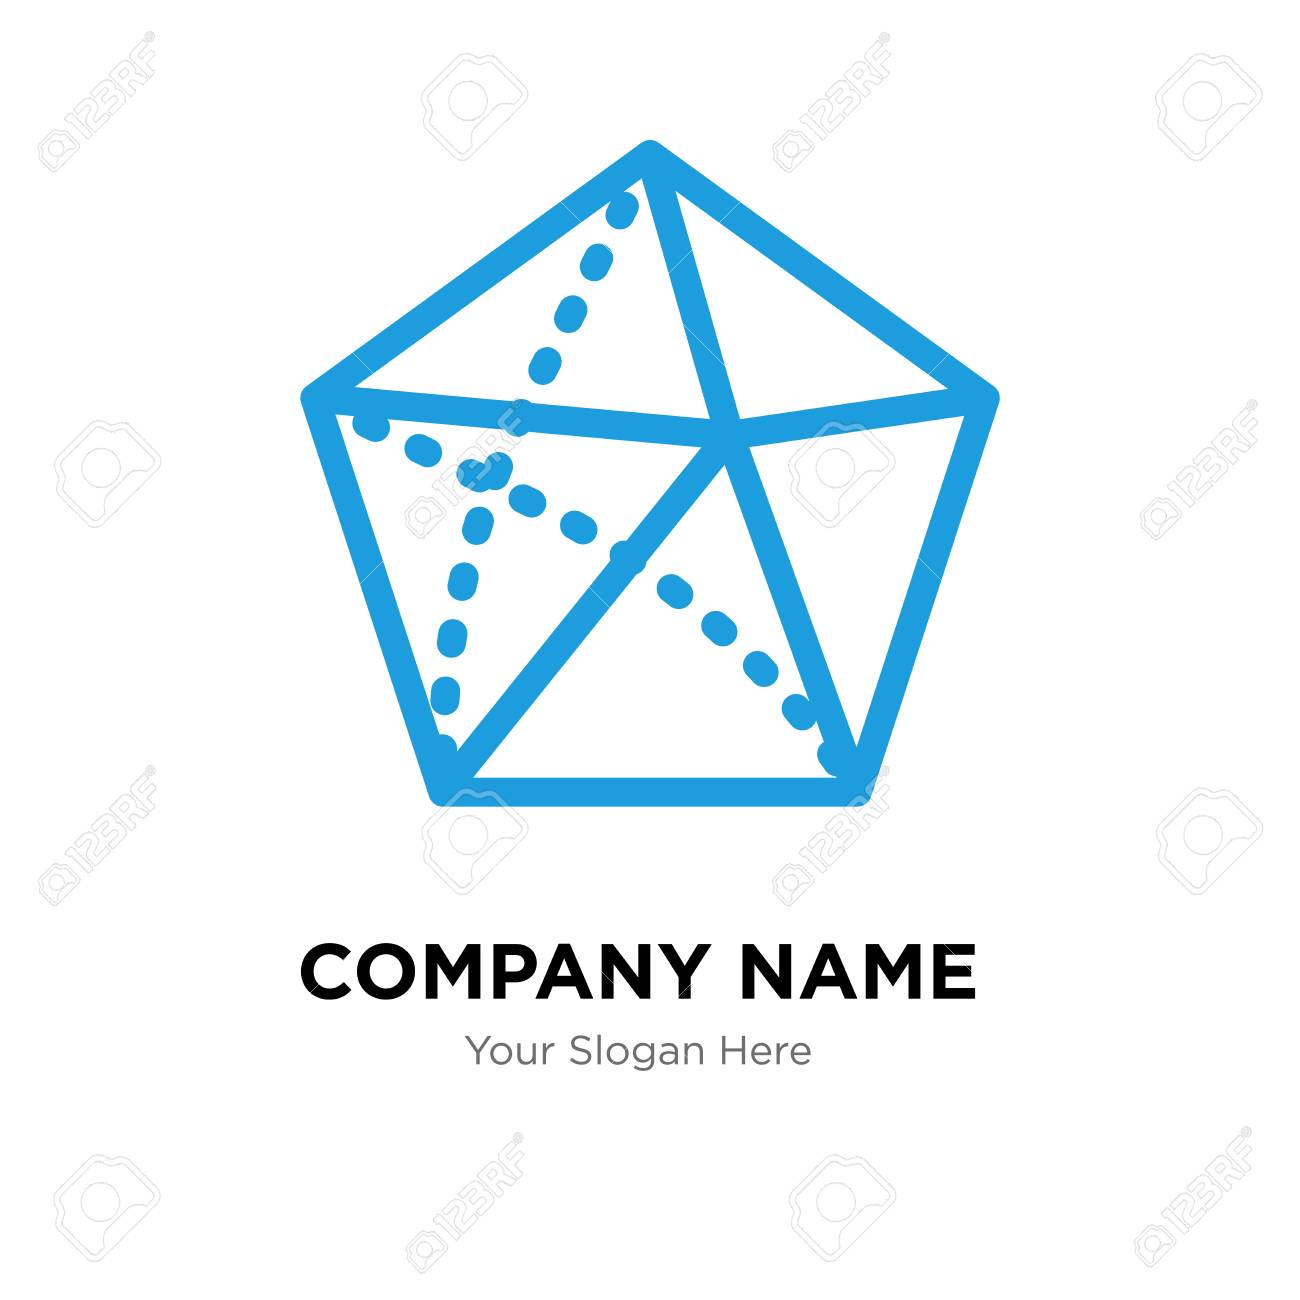 Dodecahedron Template | Dodecahedron Company Logo Design Template Dodecahedron Logotype